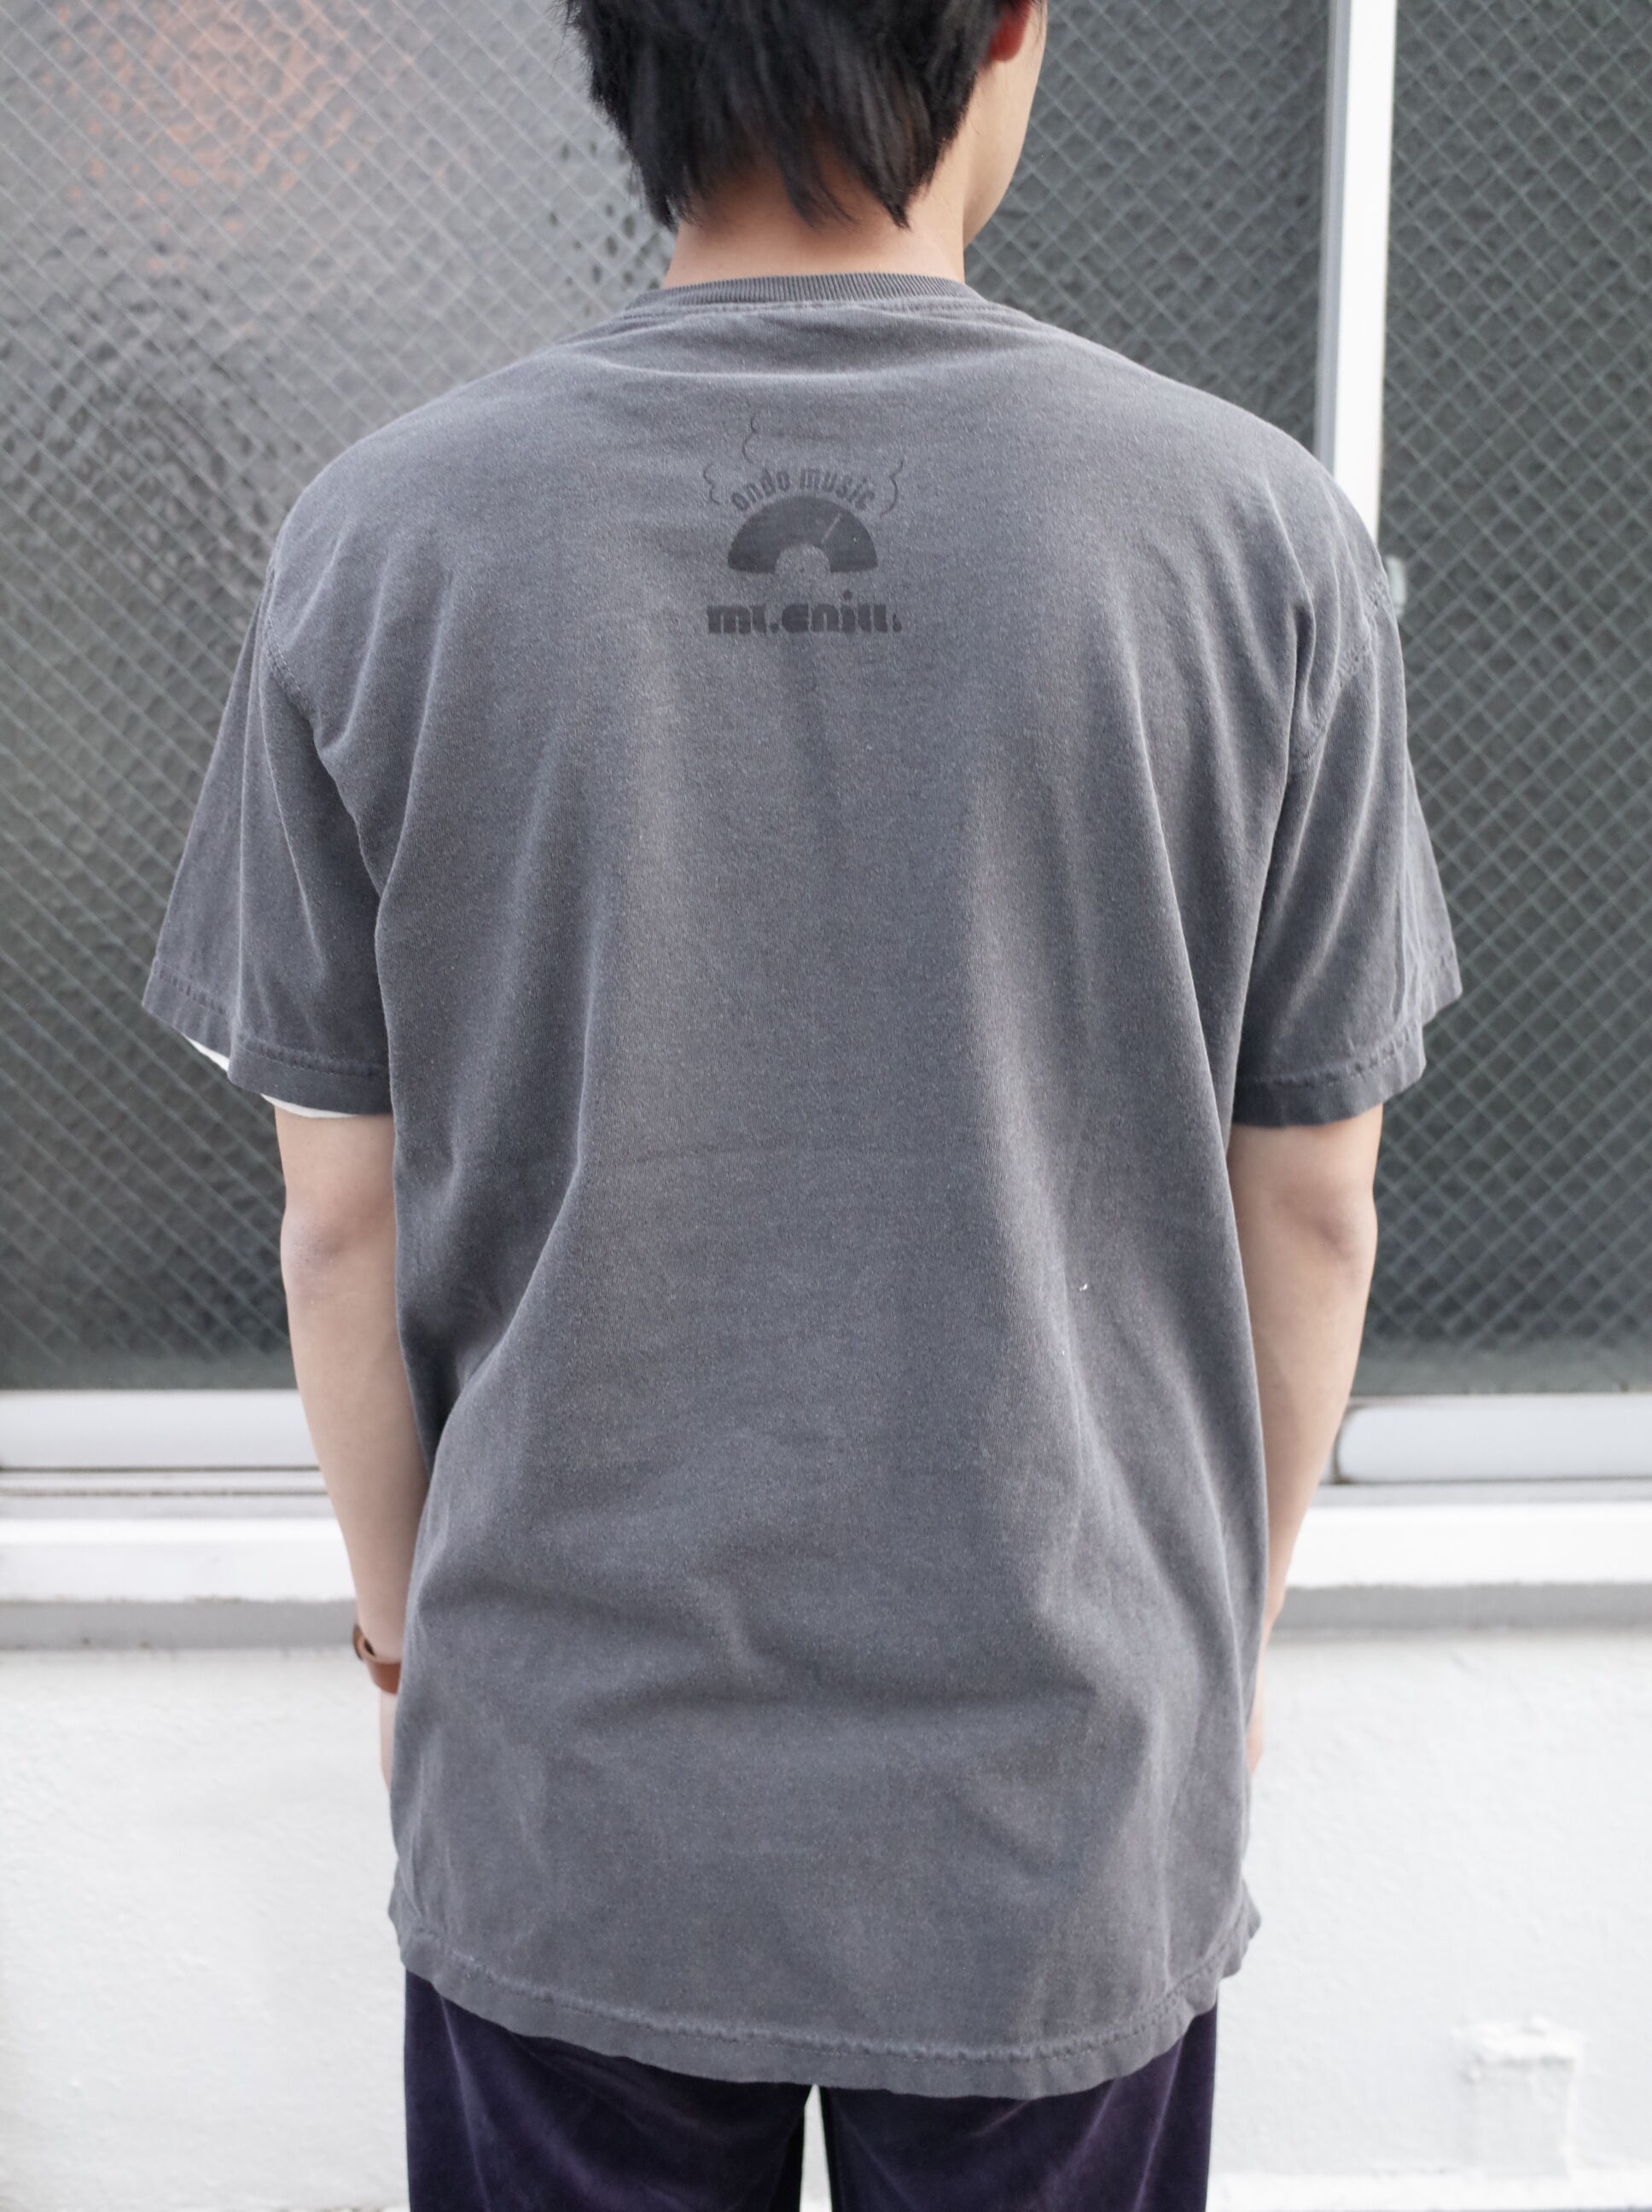 CHILL MOUNTAIN - 「Under the laundromat」RemixCollage T-shirts wash black Size M : WEAR gallery 0